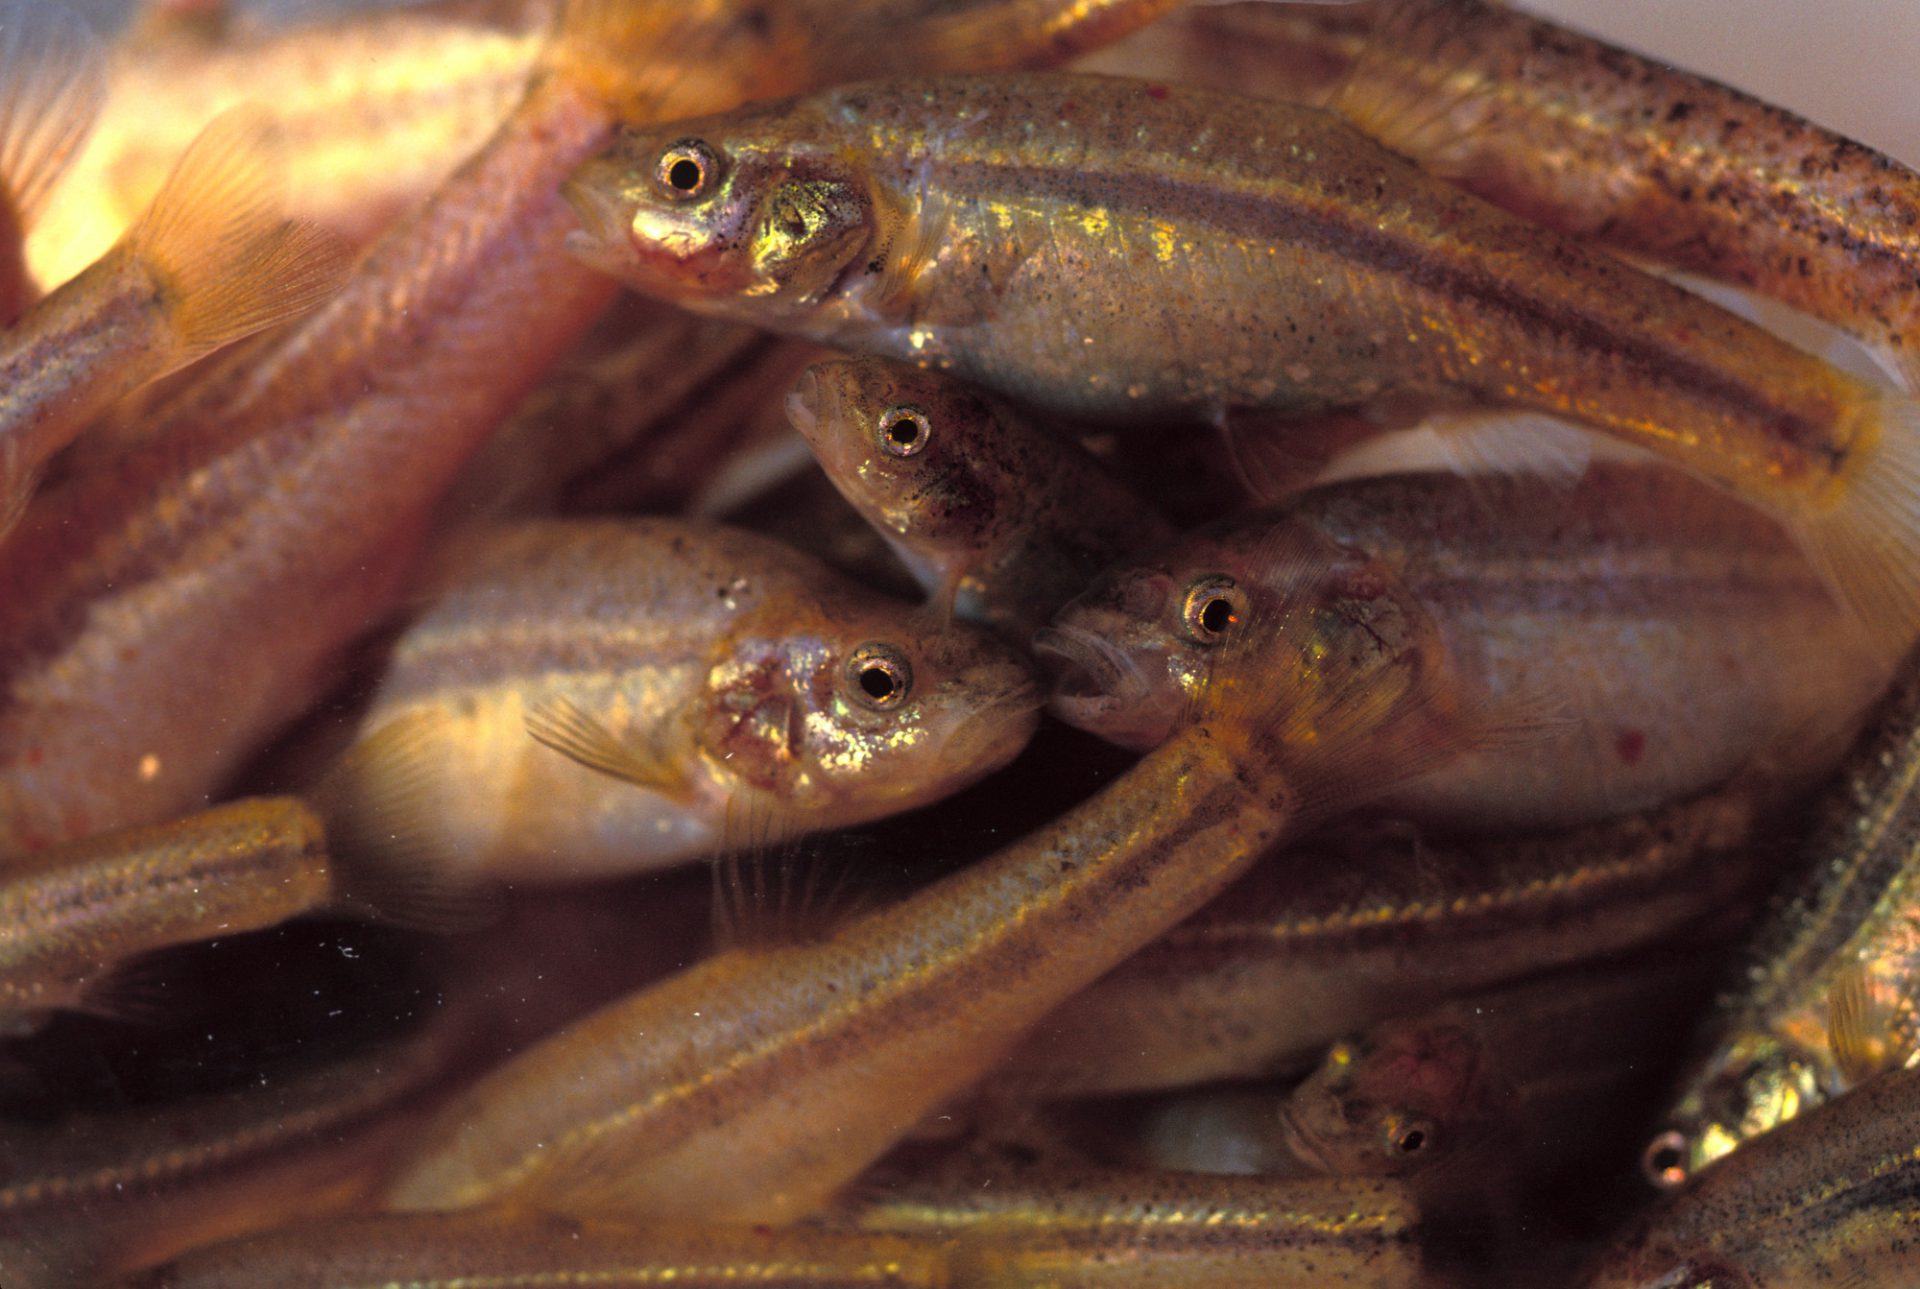 Photo: The Ash Meadows Speckled Dace is one of many endangered species at the Ash Meadows NWR in Nevada.